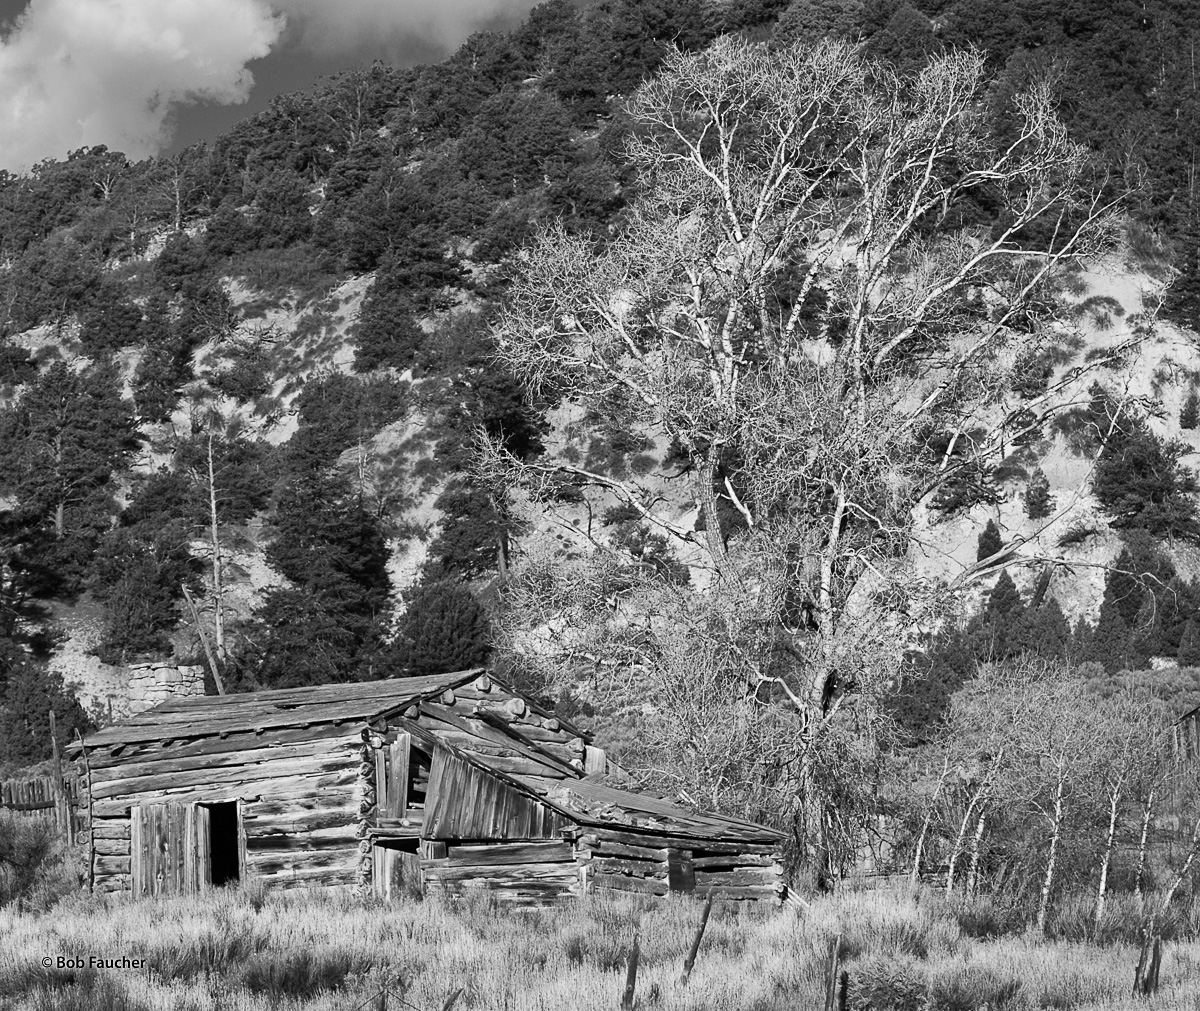 An abandoned building in Long Valley, Utah, near the turnoff to Bryce Canyon